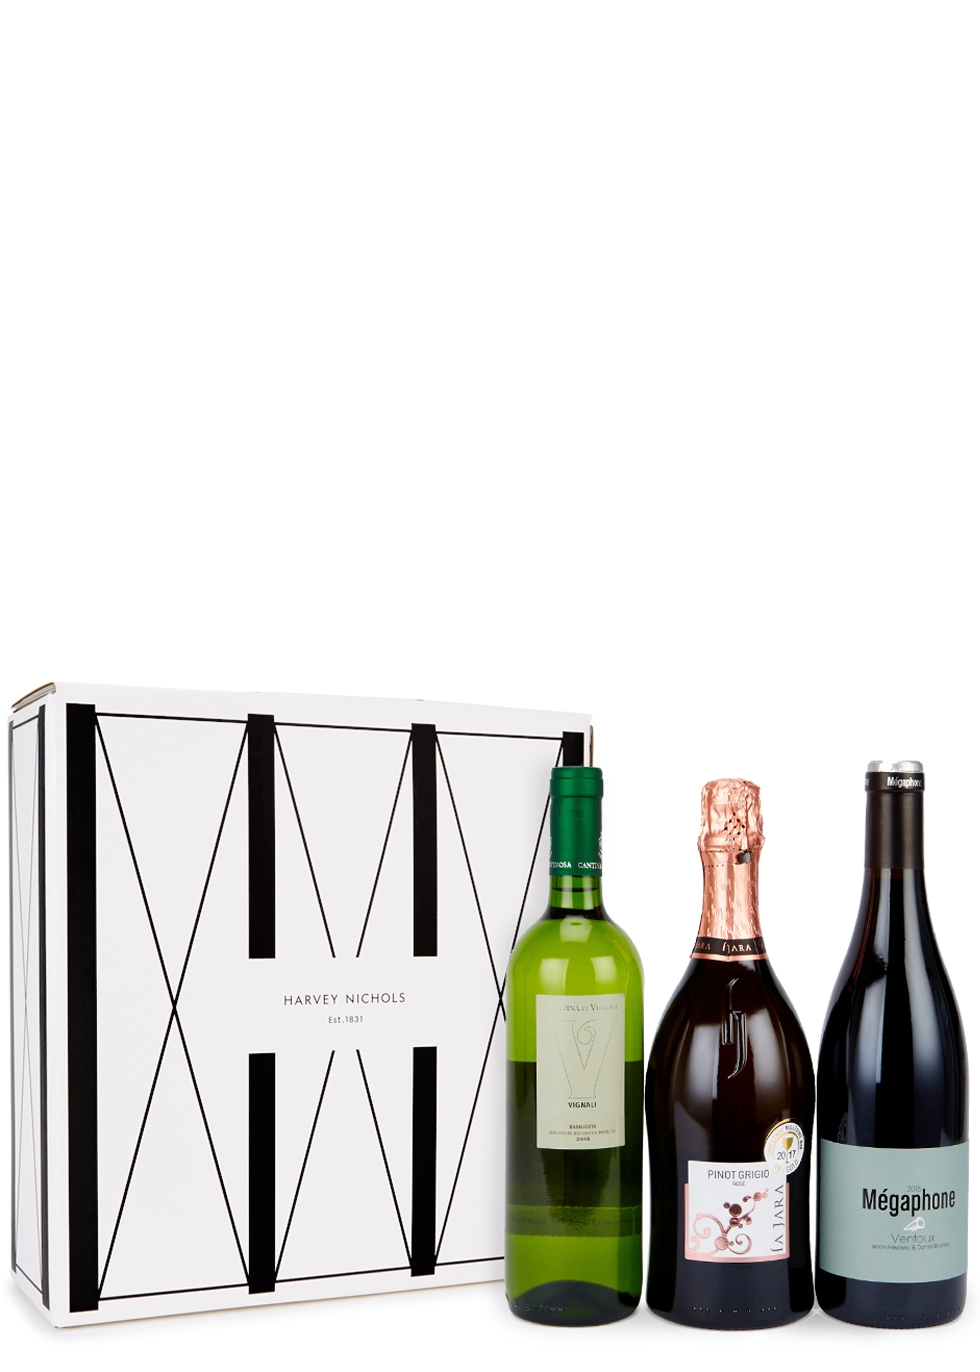 The Joys of Spring Wine Collection - Harvey Nichols